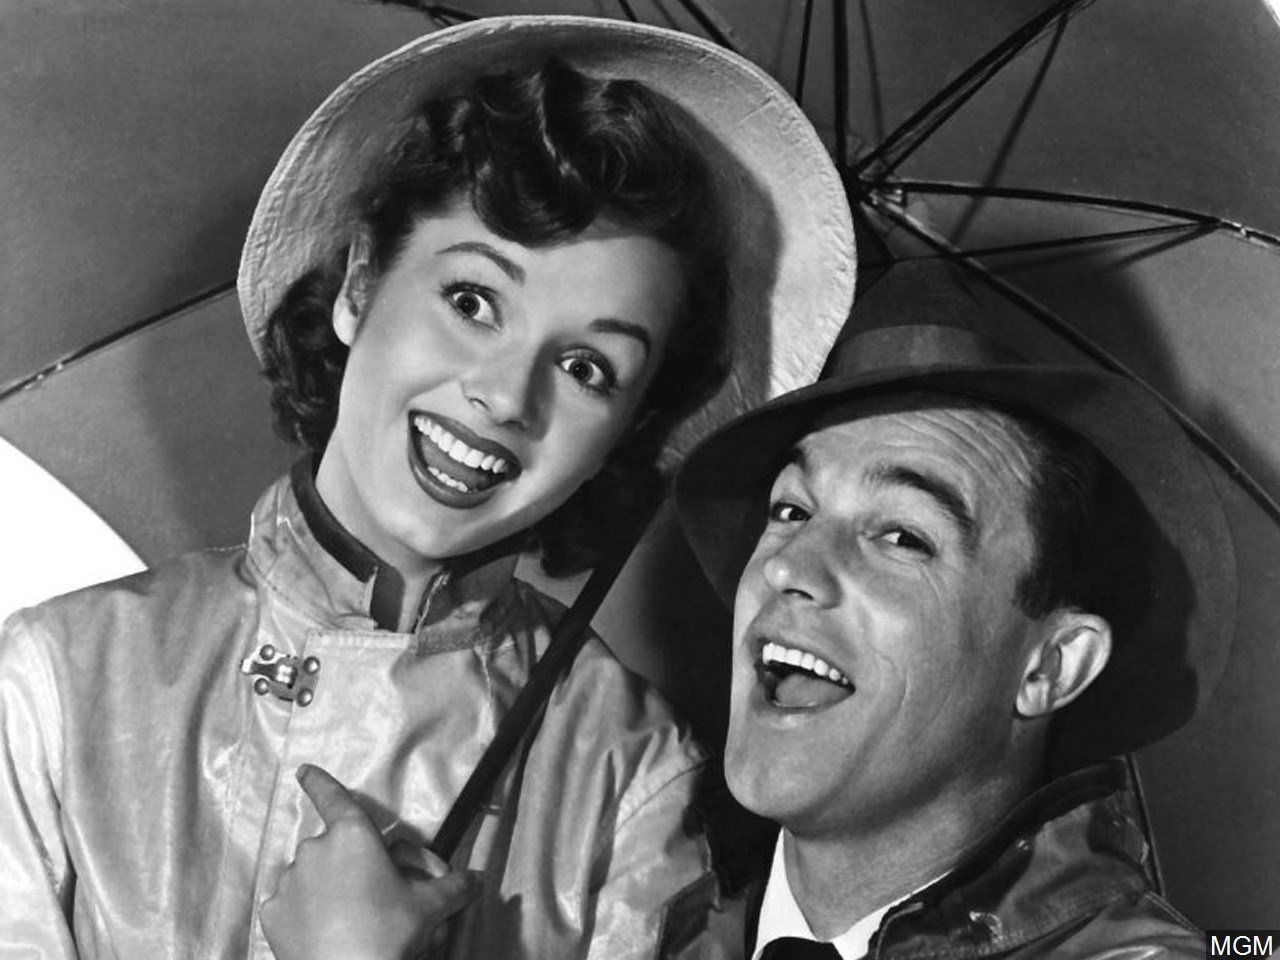 regal cinemas to re release singin in the rain for days lexington ky regal entertainment group has announced in honor of the late debbie reynolds legacy they will be releasing singin in the rain